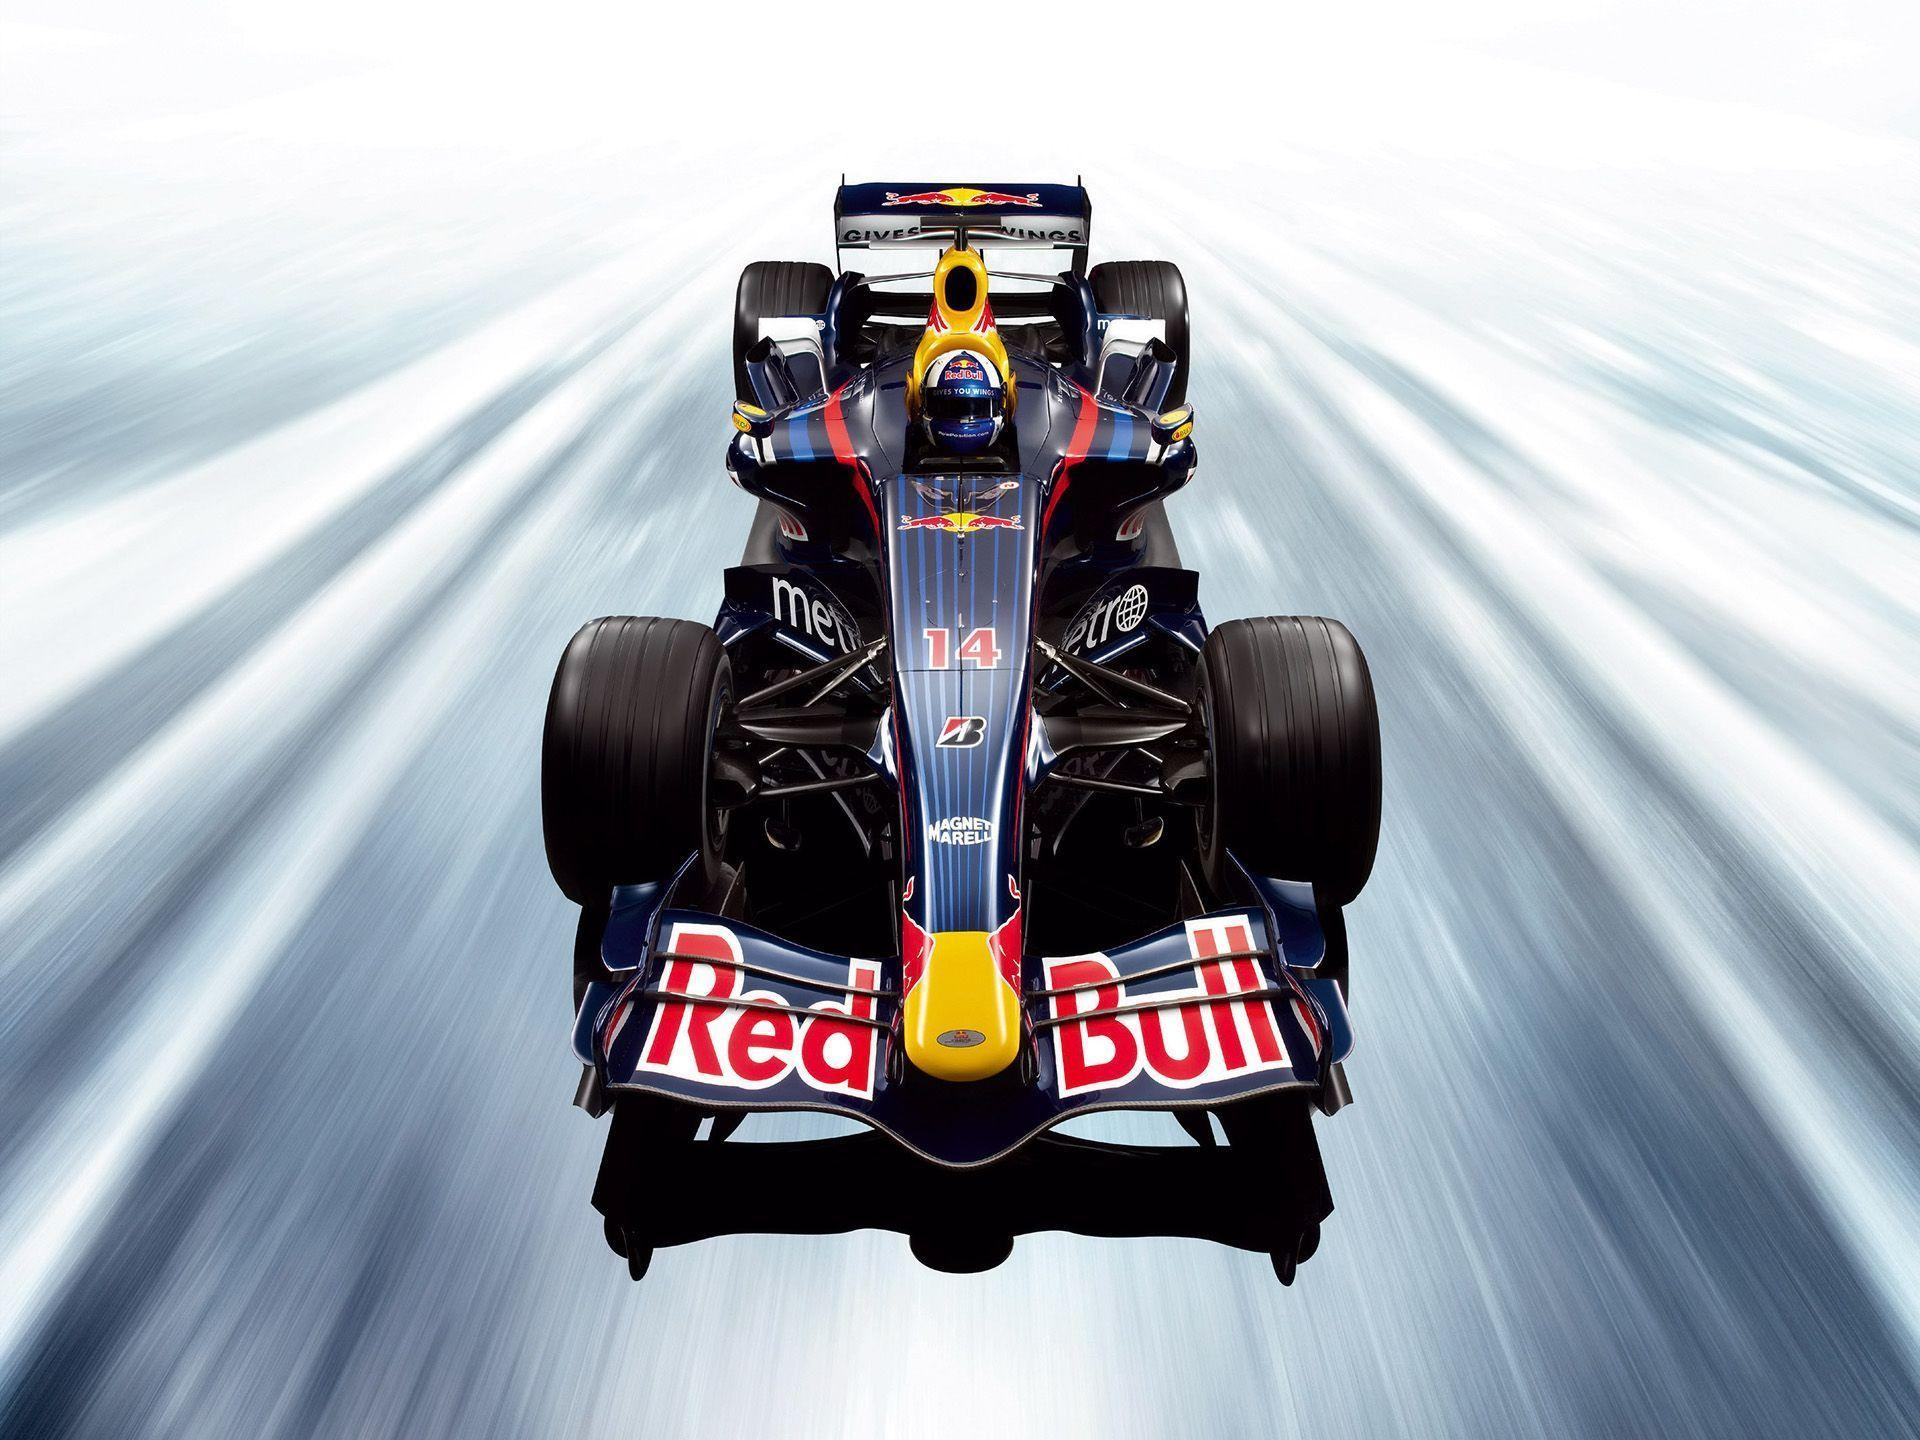 red bull racing wallpapers wallpaper cave. Black Bedroom Furniture Sets. Home Design Ideas